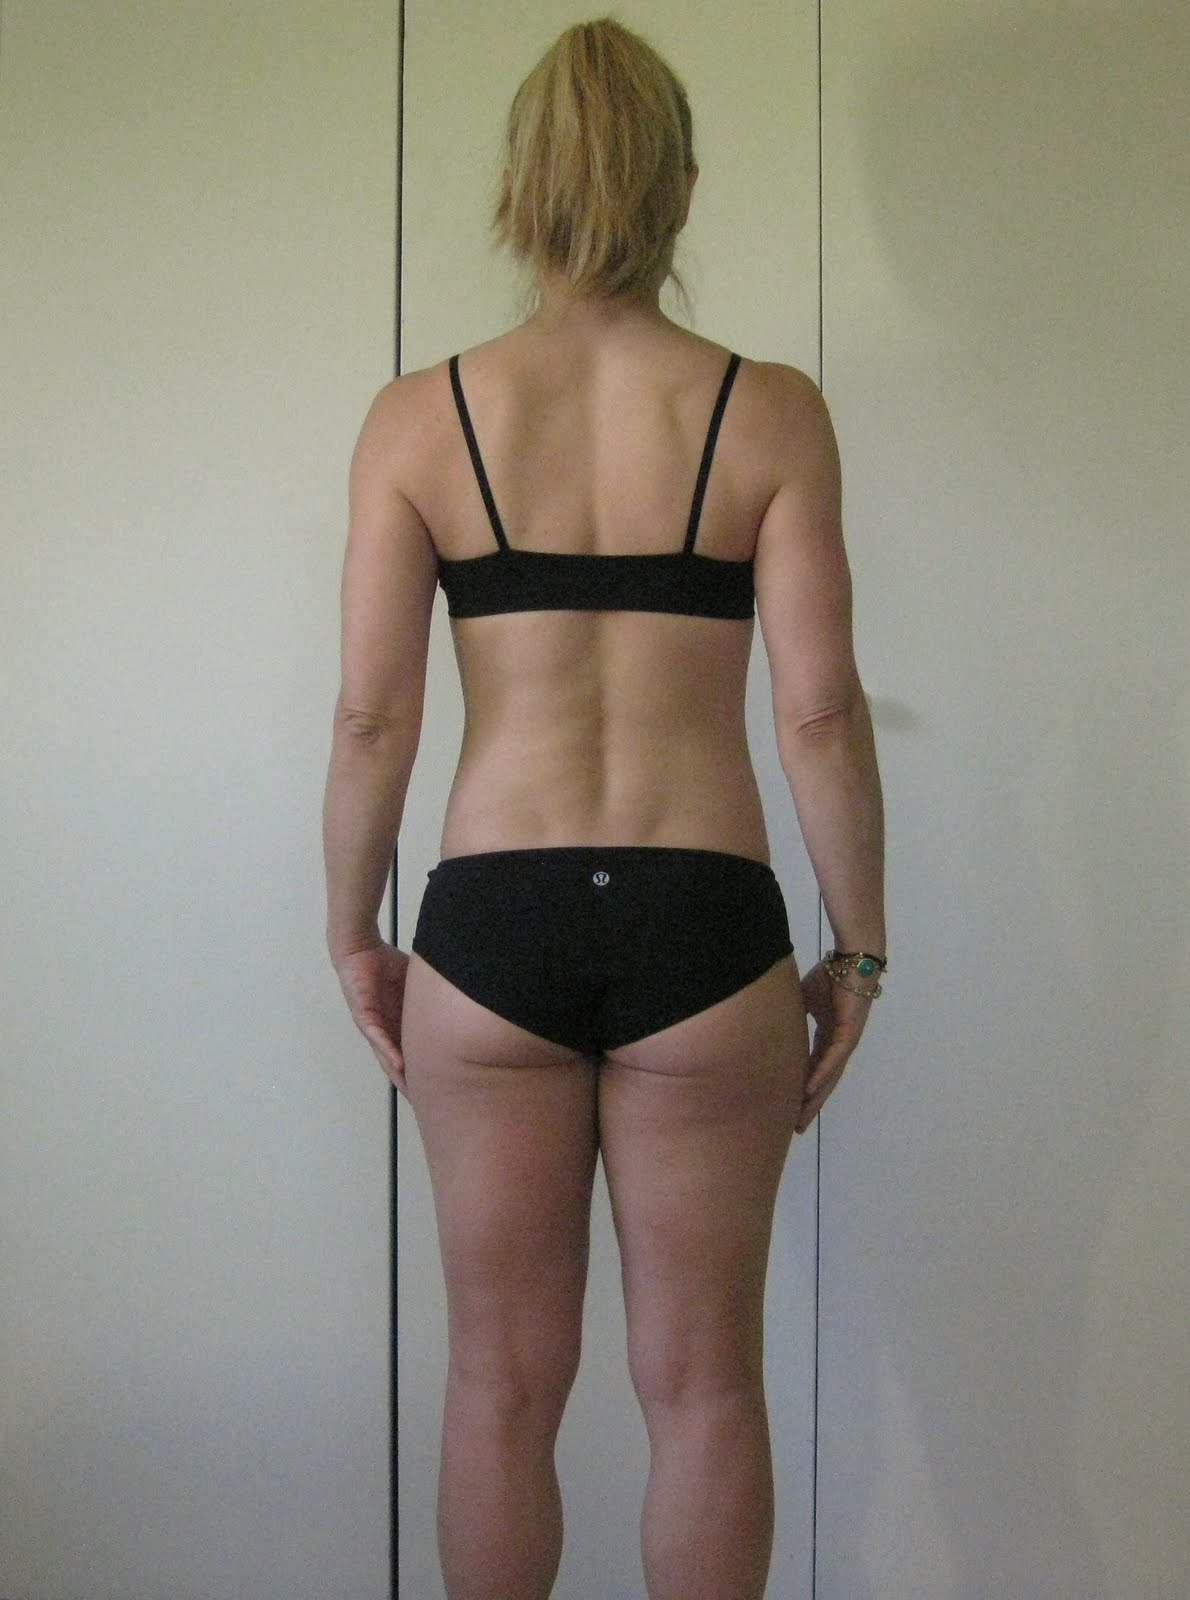 Fat burners weight loss supplements